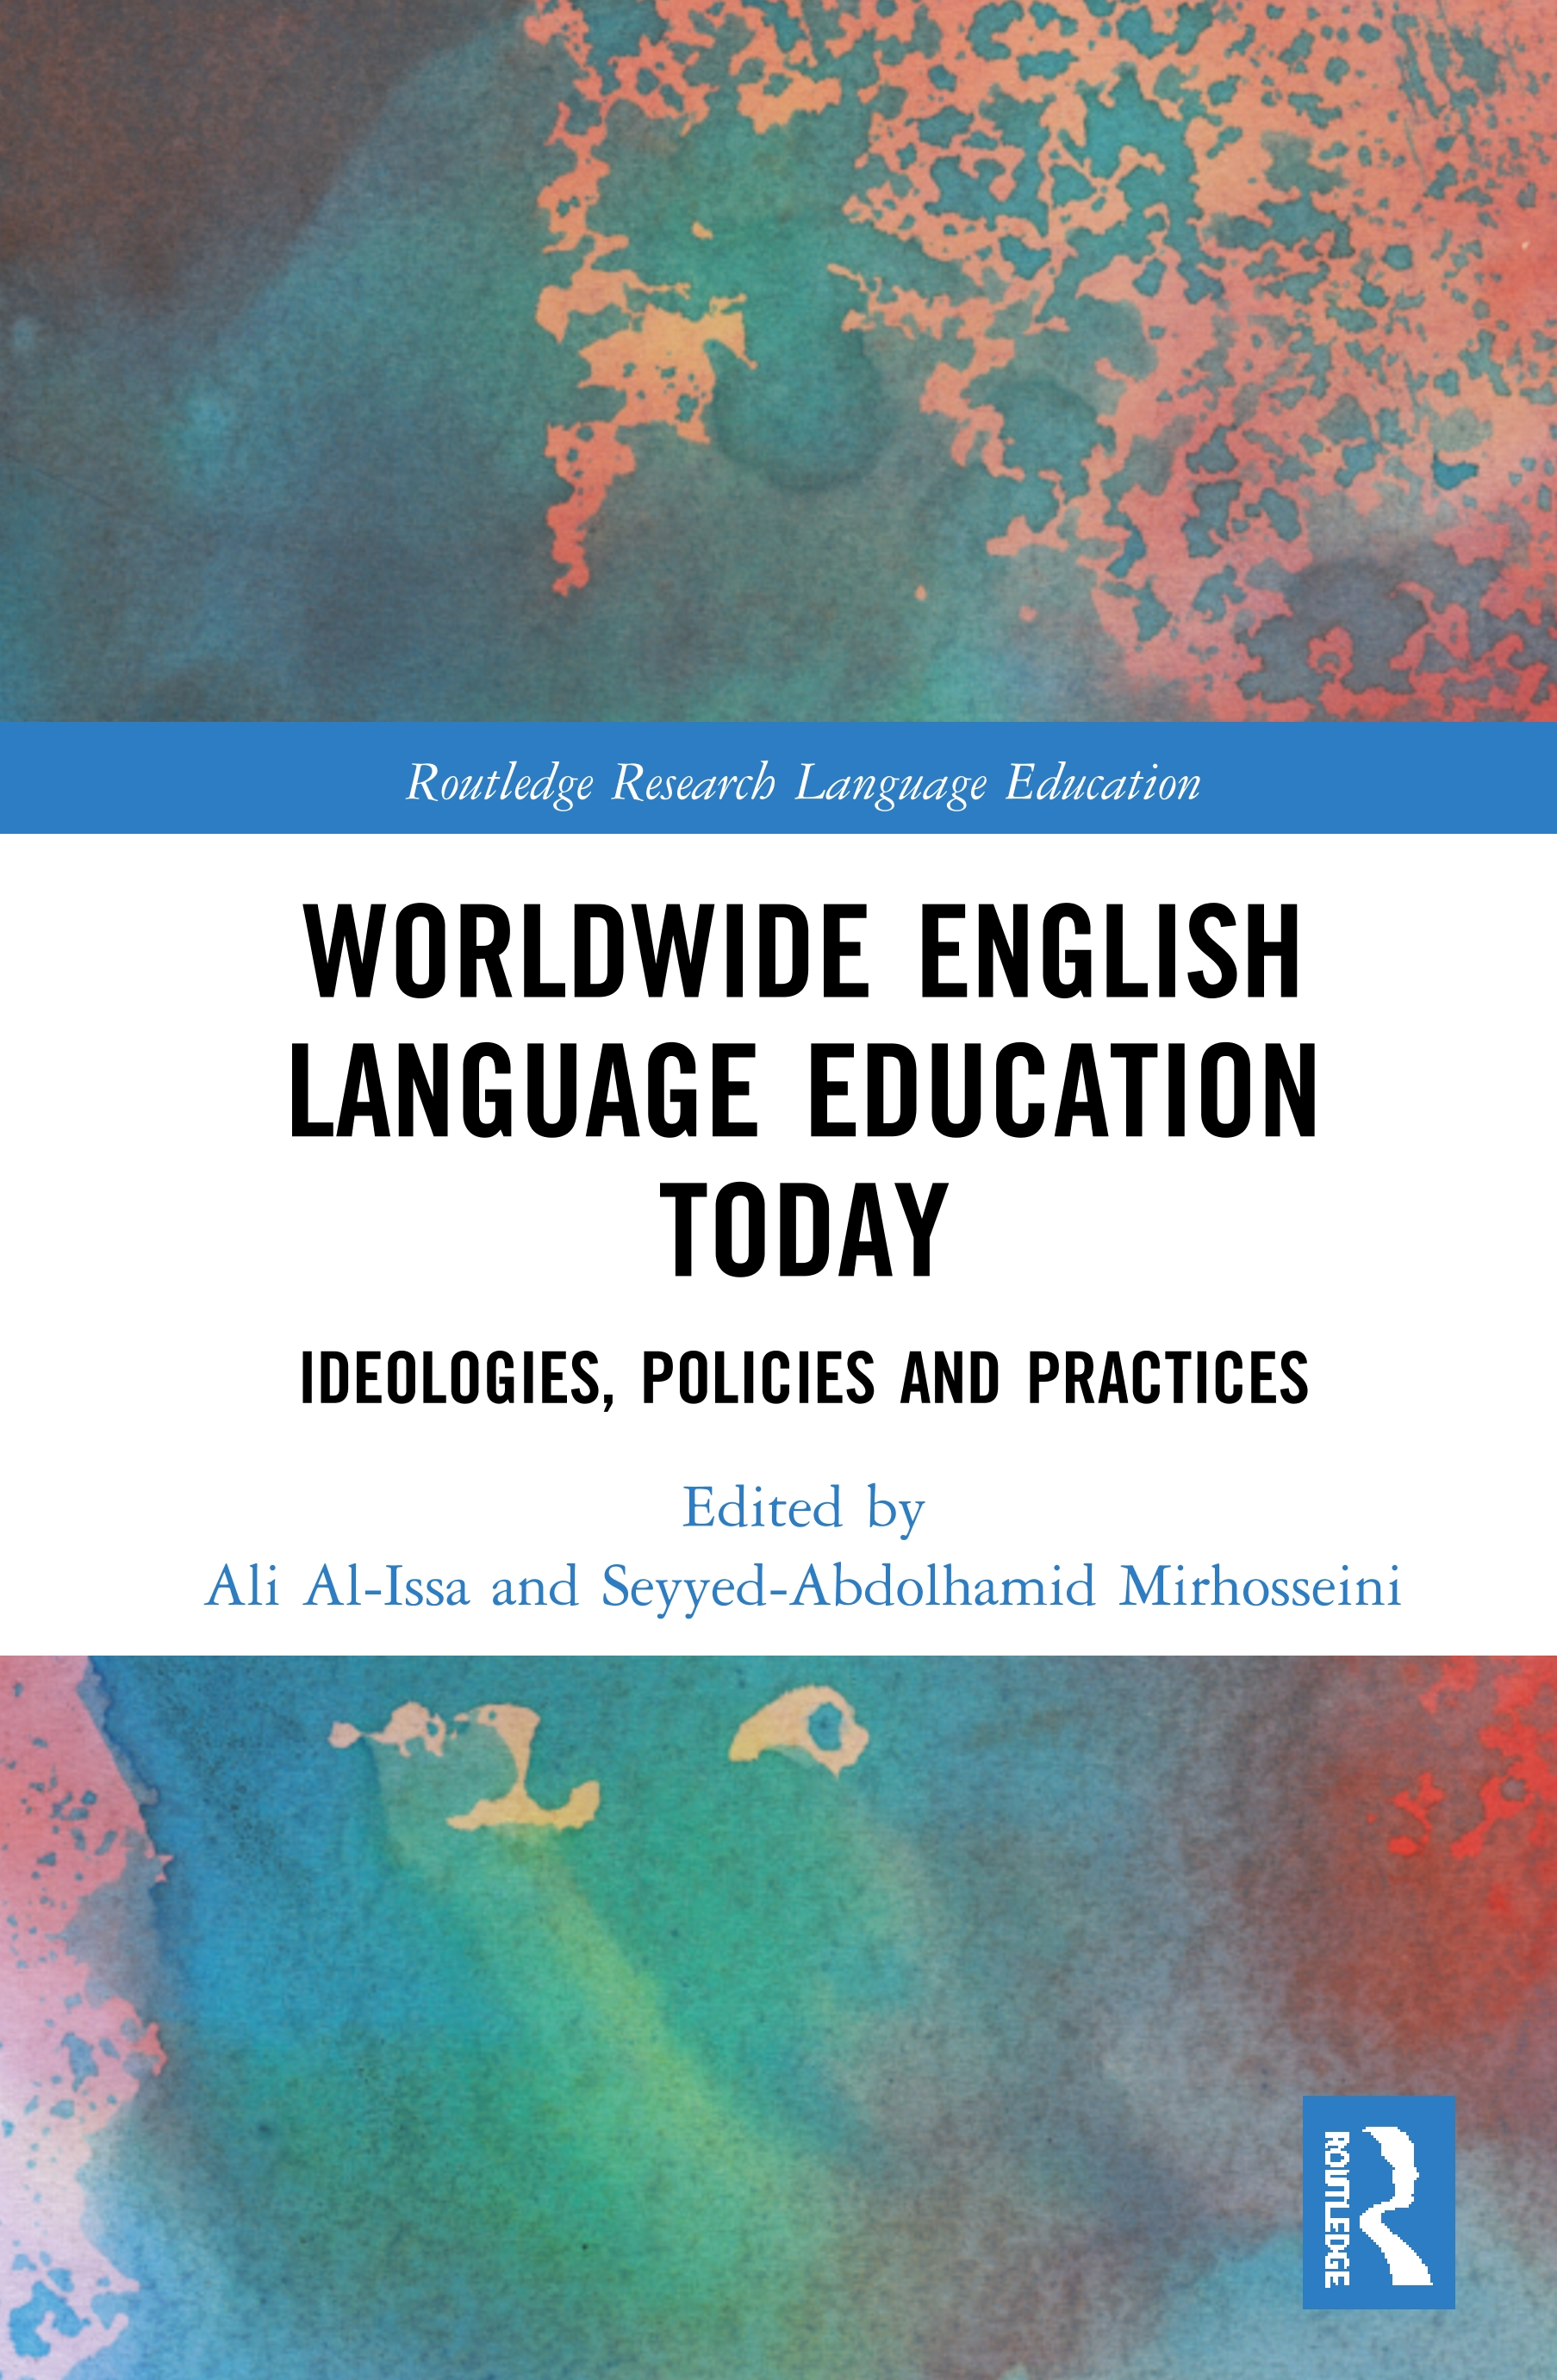 Worldwide English Language Education Today: Ideologies, Policies and Practices book cover